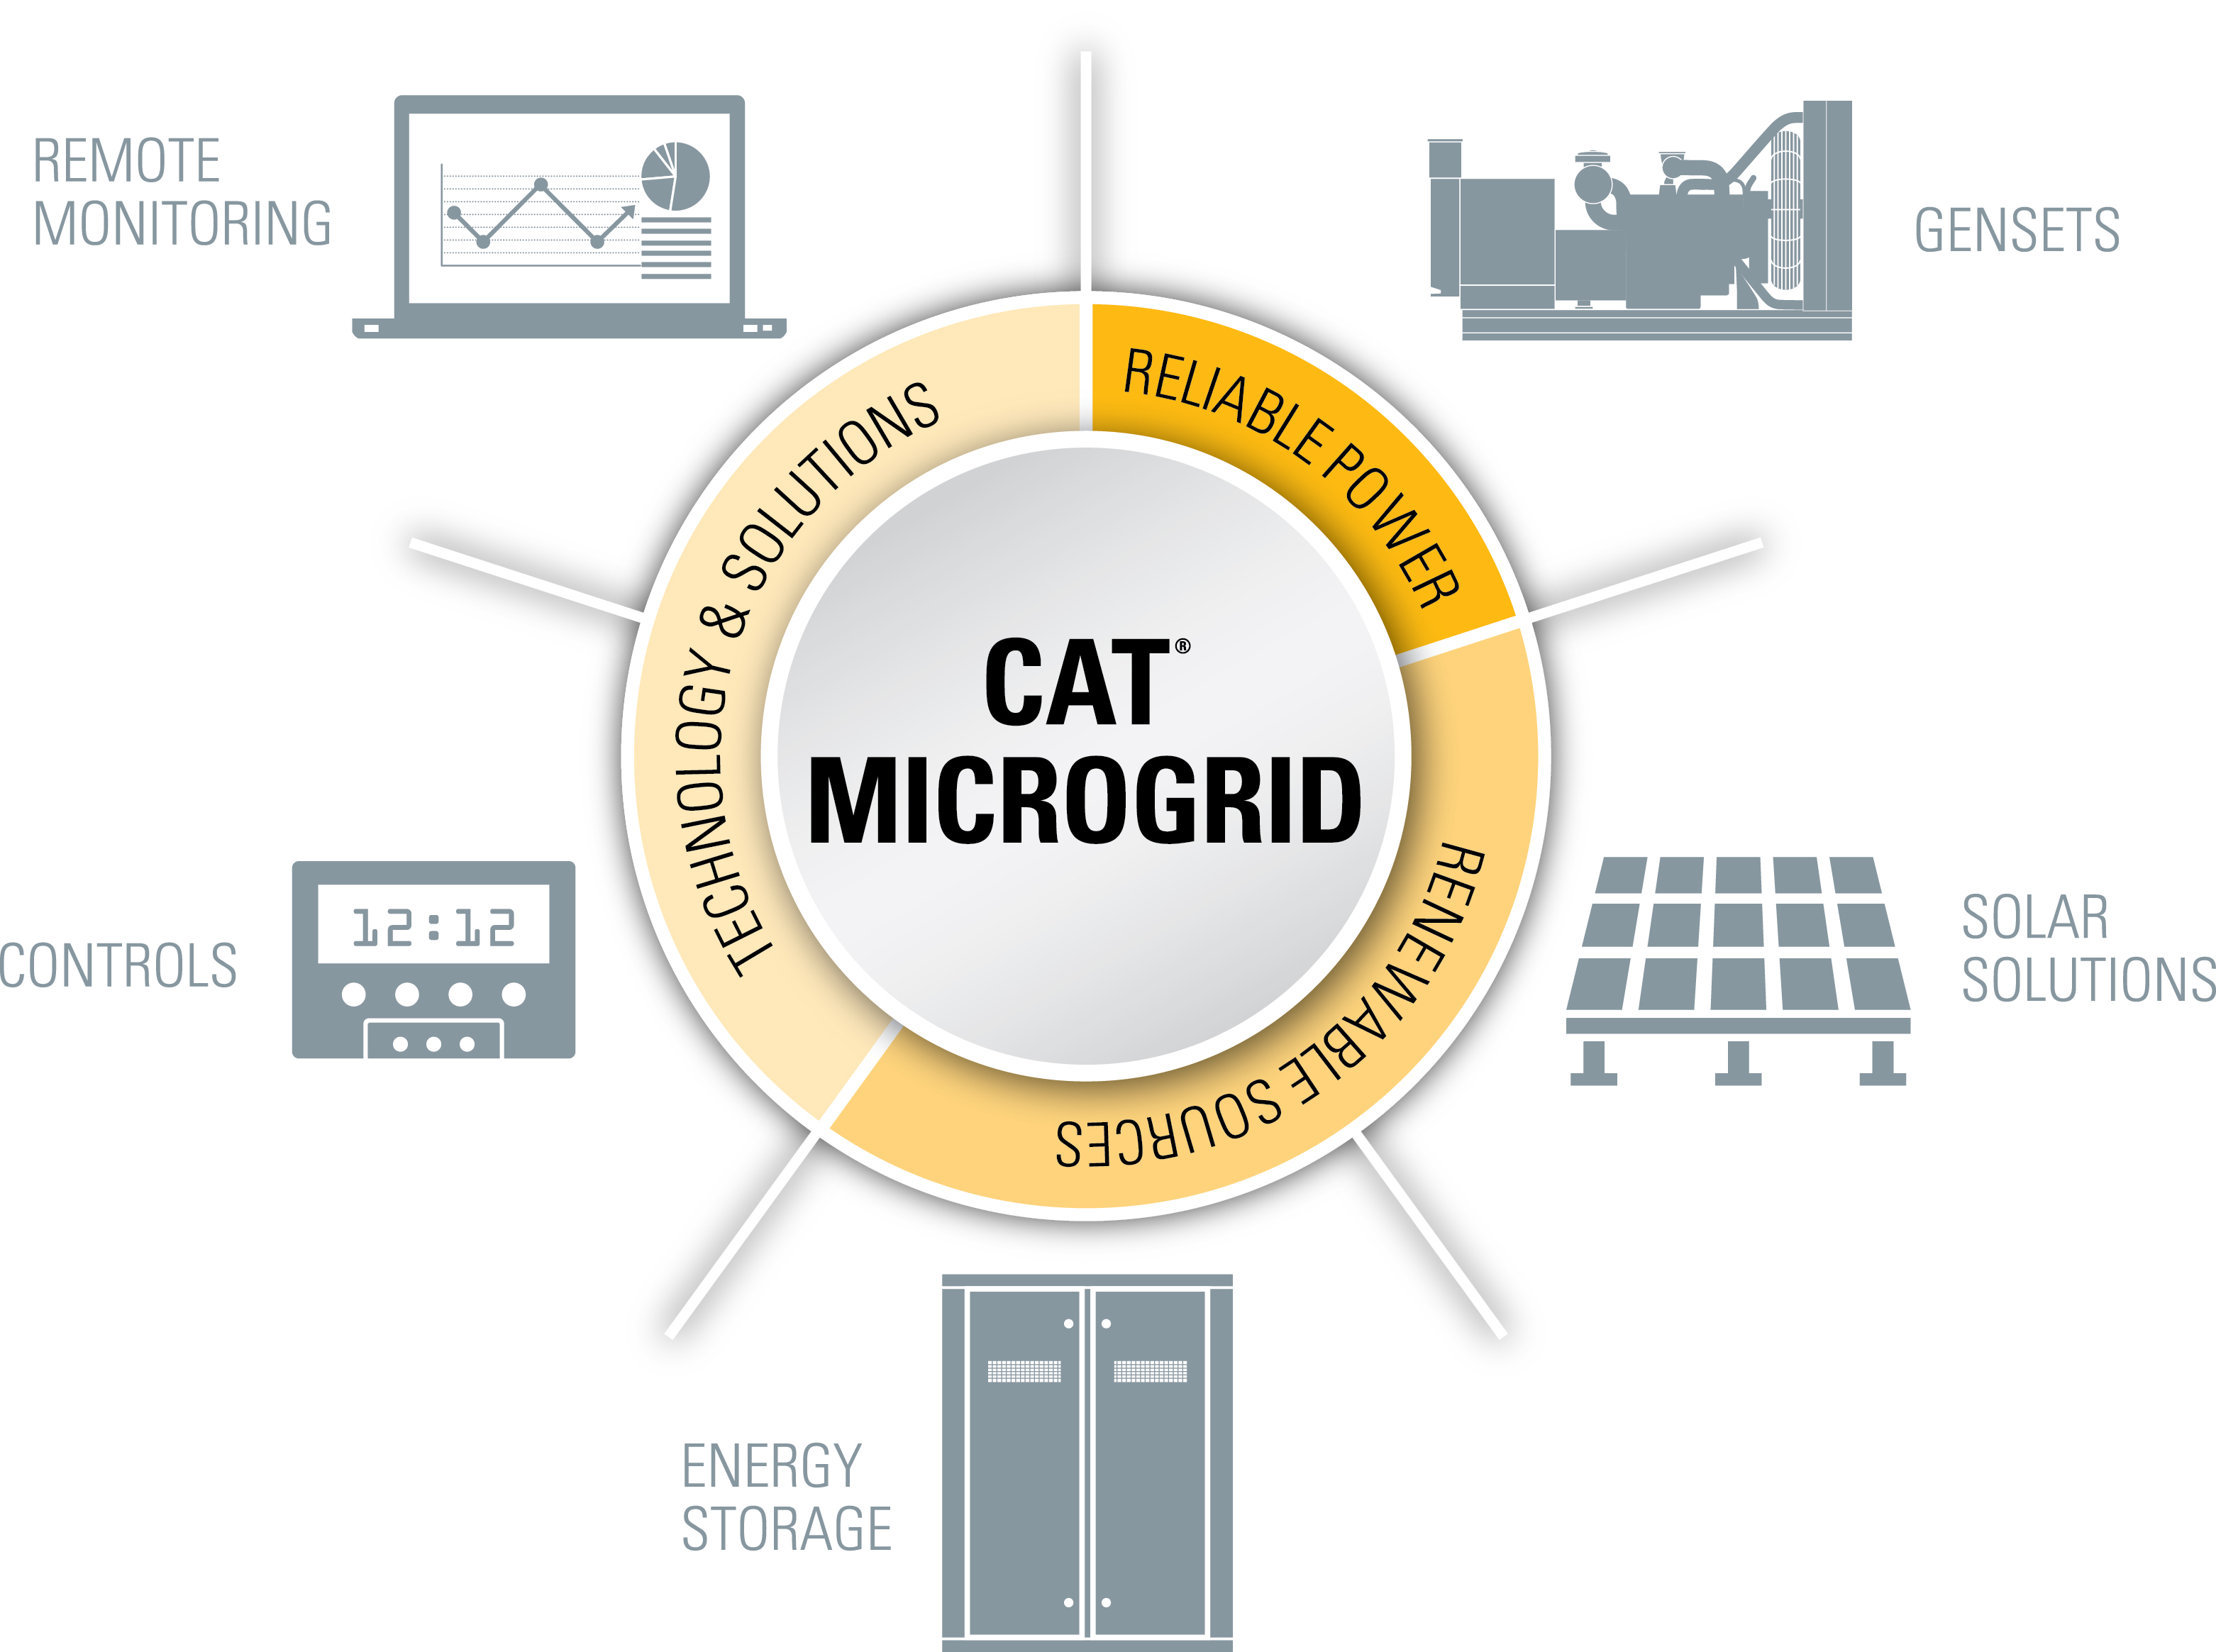 Caterpillar Launches Cat Microgrid Technology Suite Integrating